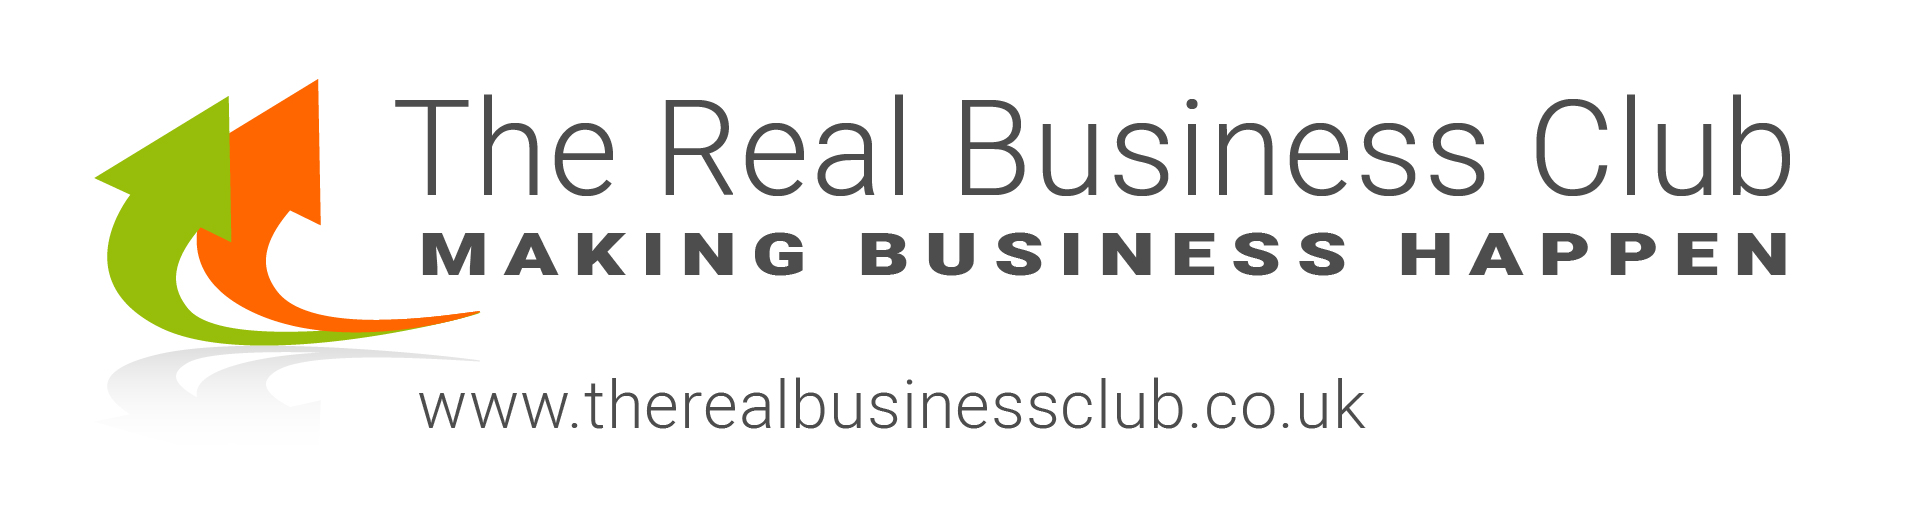 The-Real-Business-Club-logo-web-address.jpg